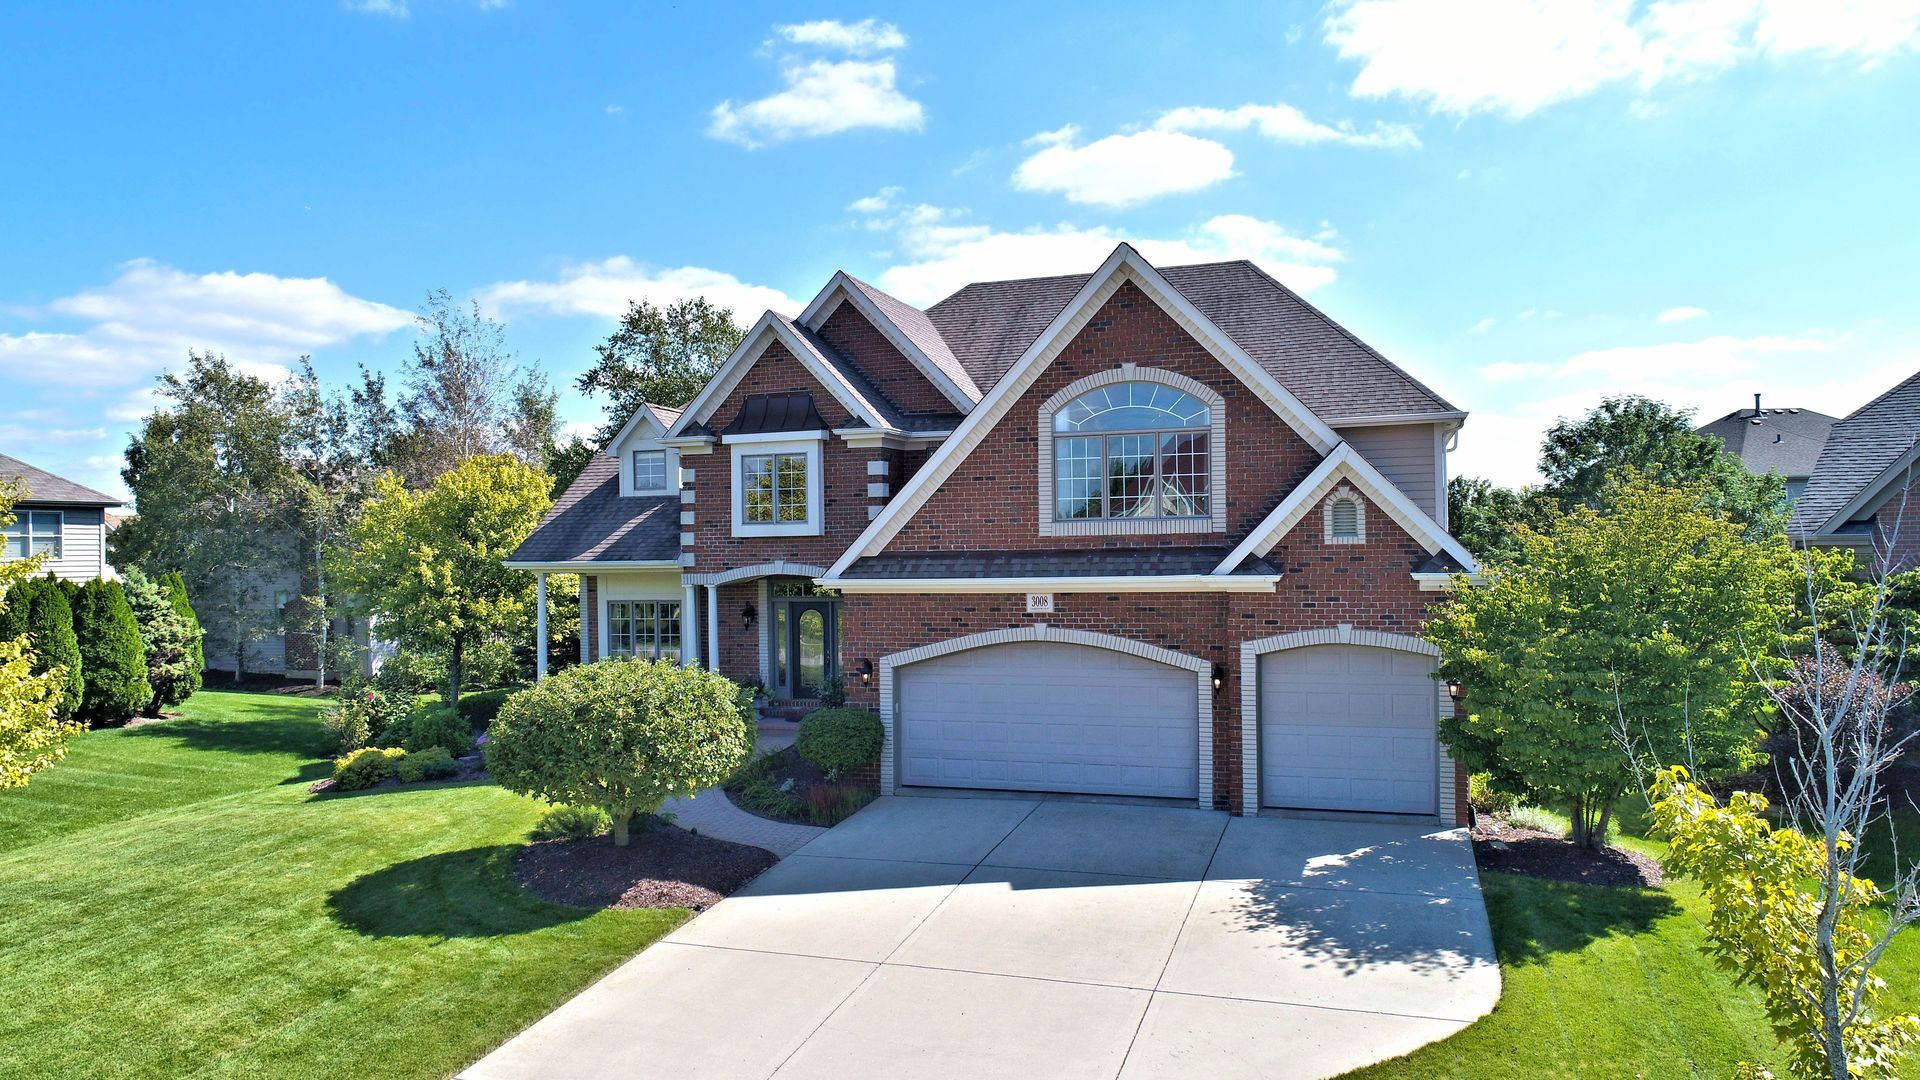 3008 Goldenglow Court, Naperville, IL 60564 - #: 10619320